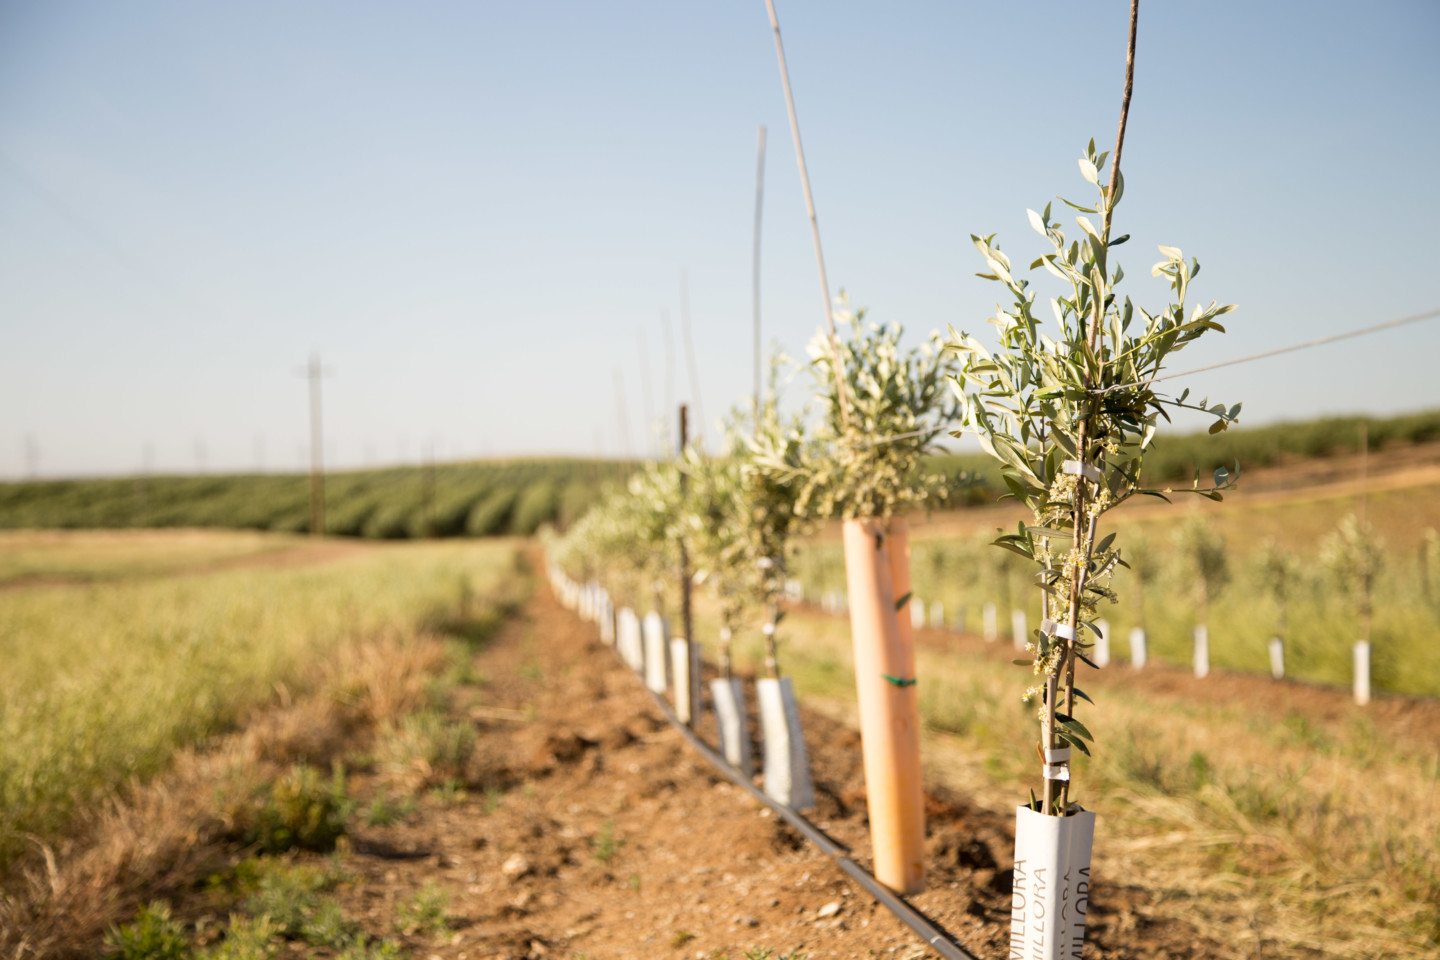 Newly planted olive tree saplings in a crop row.